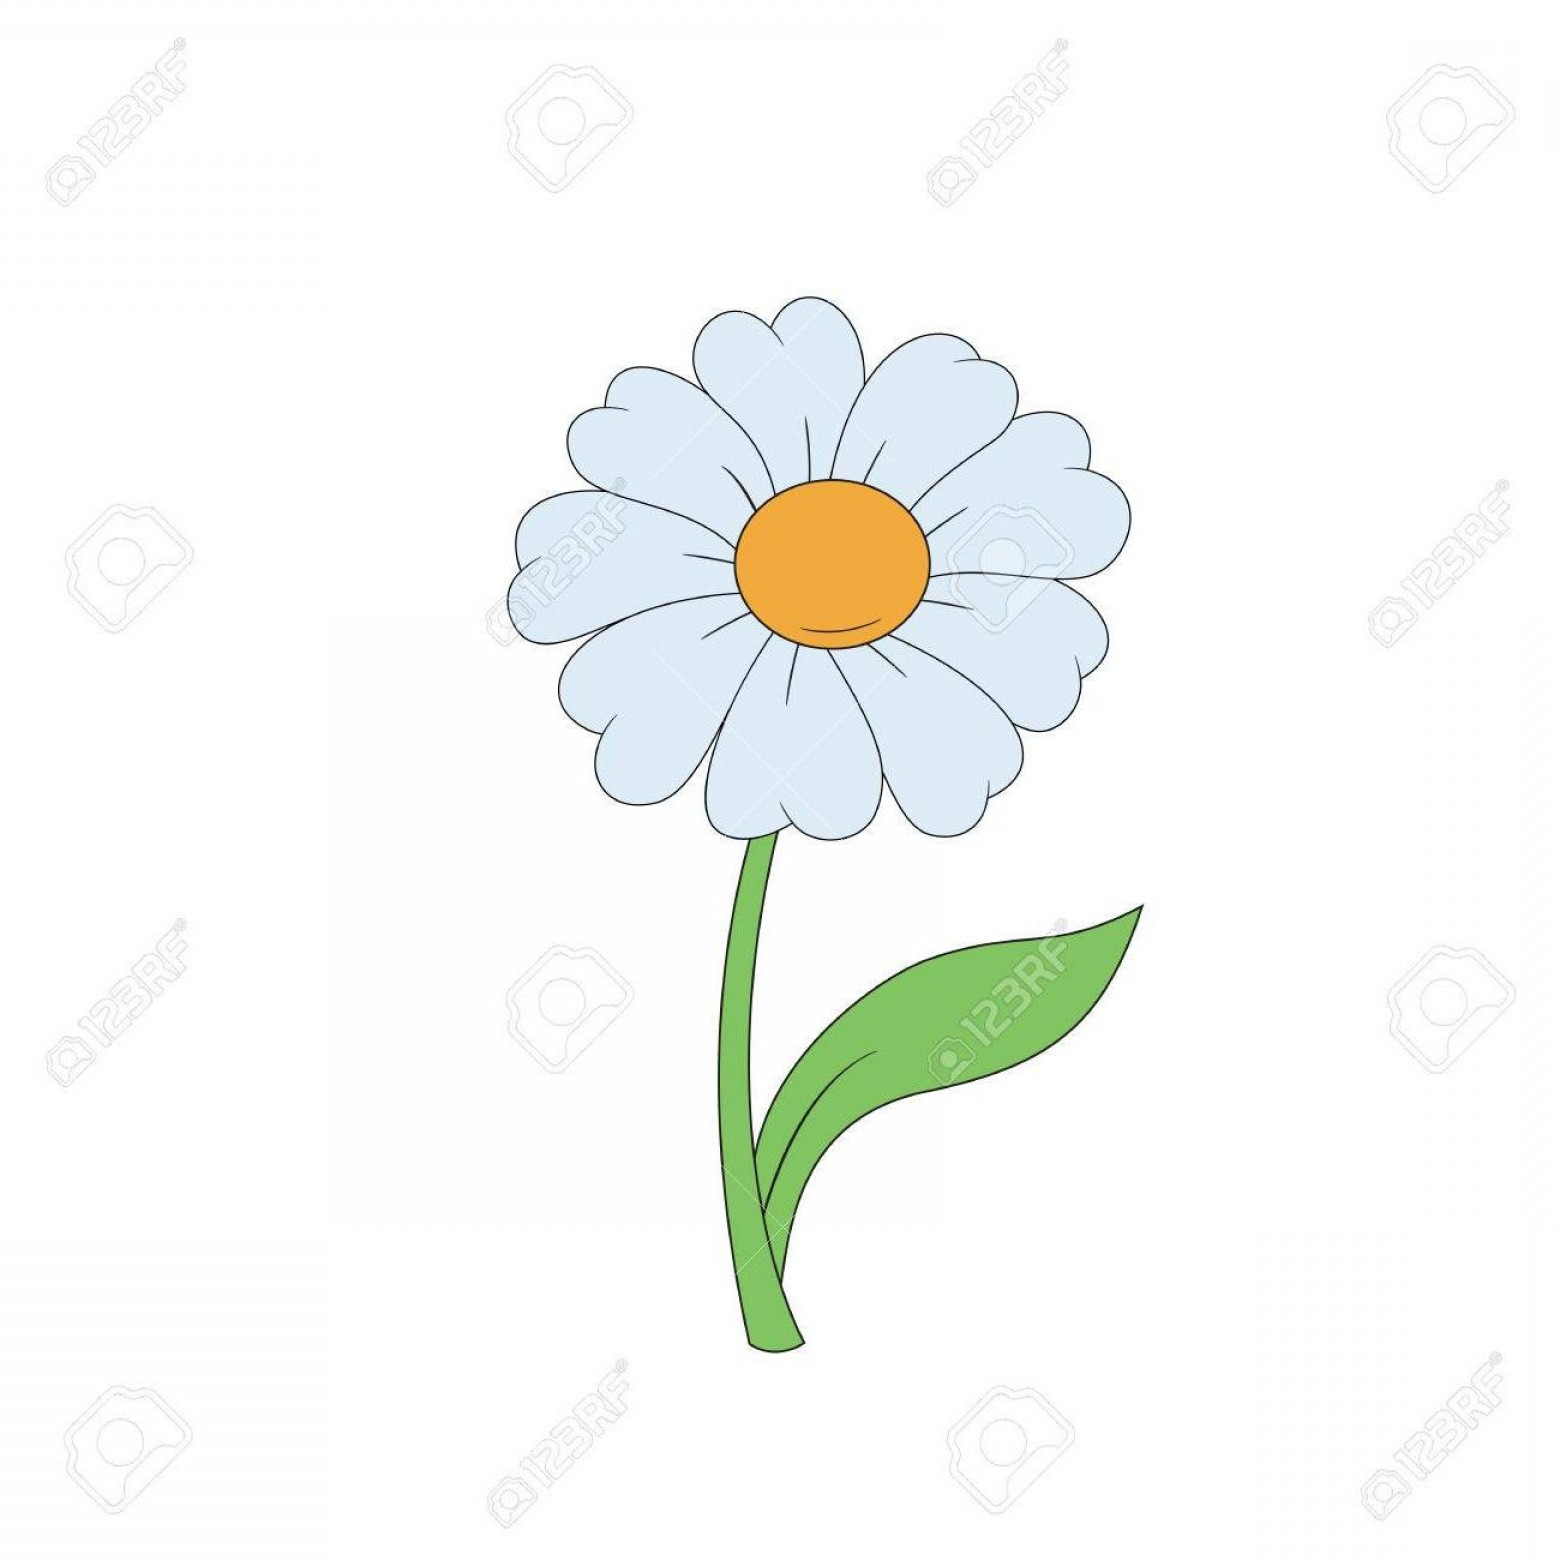 Simple Vector Daisy: Cartoon Daisy Simple Flower On White Background Vector Illustration